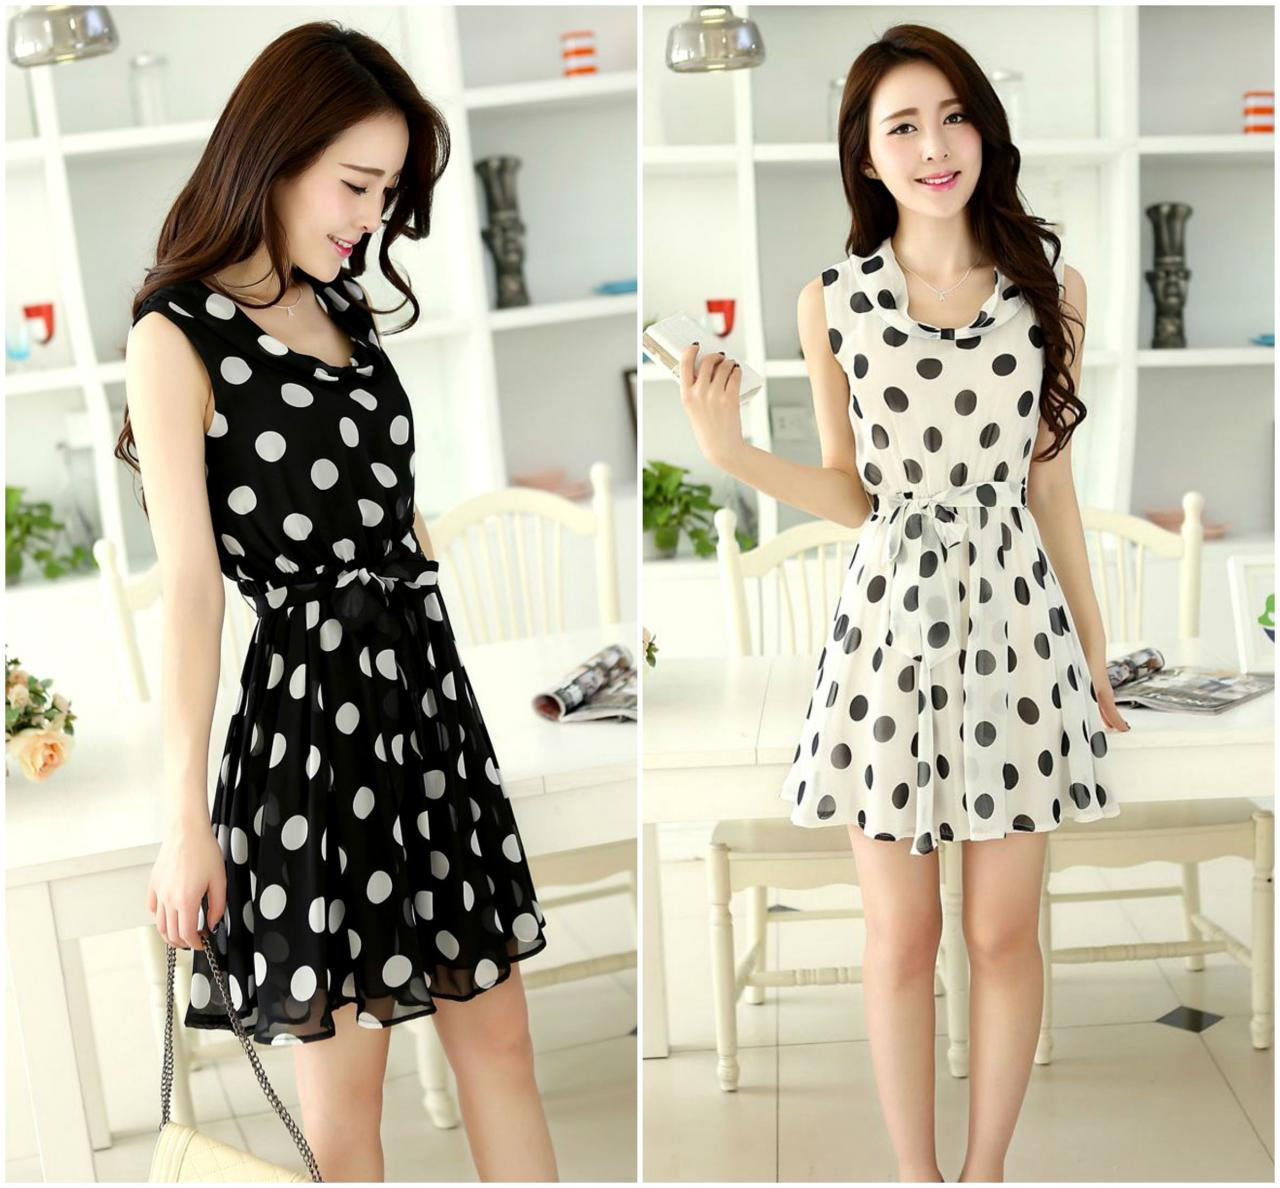 Chic Polka Dots Dress With Bow Belt In 2 Colors